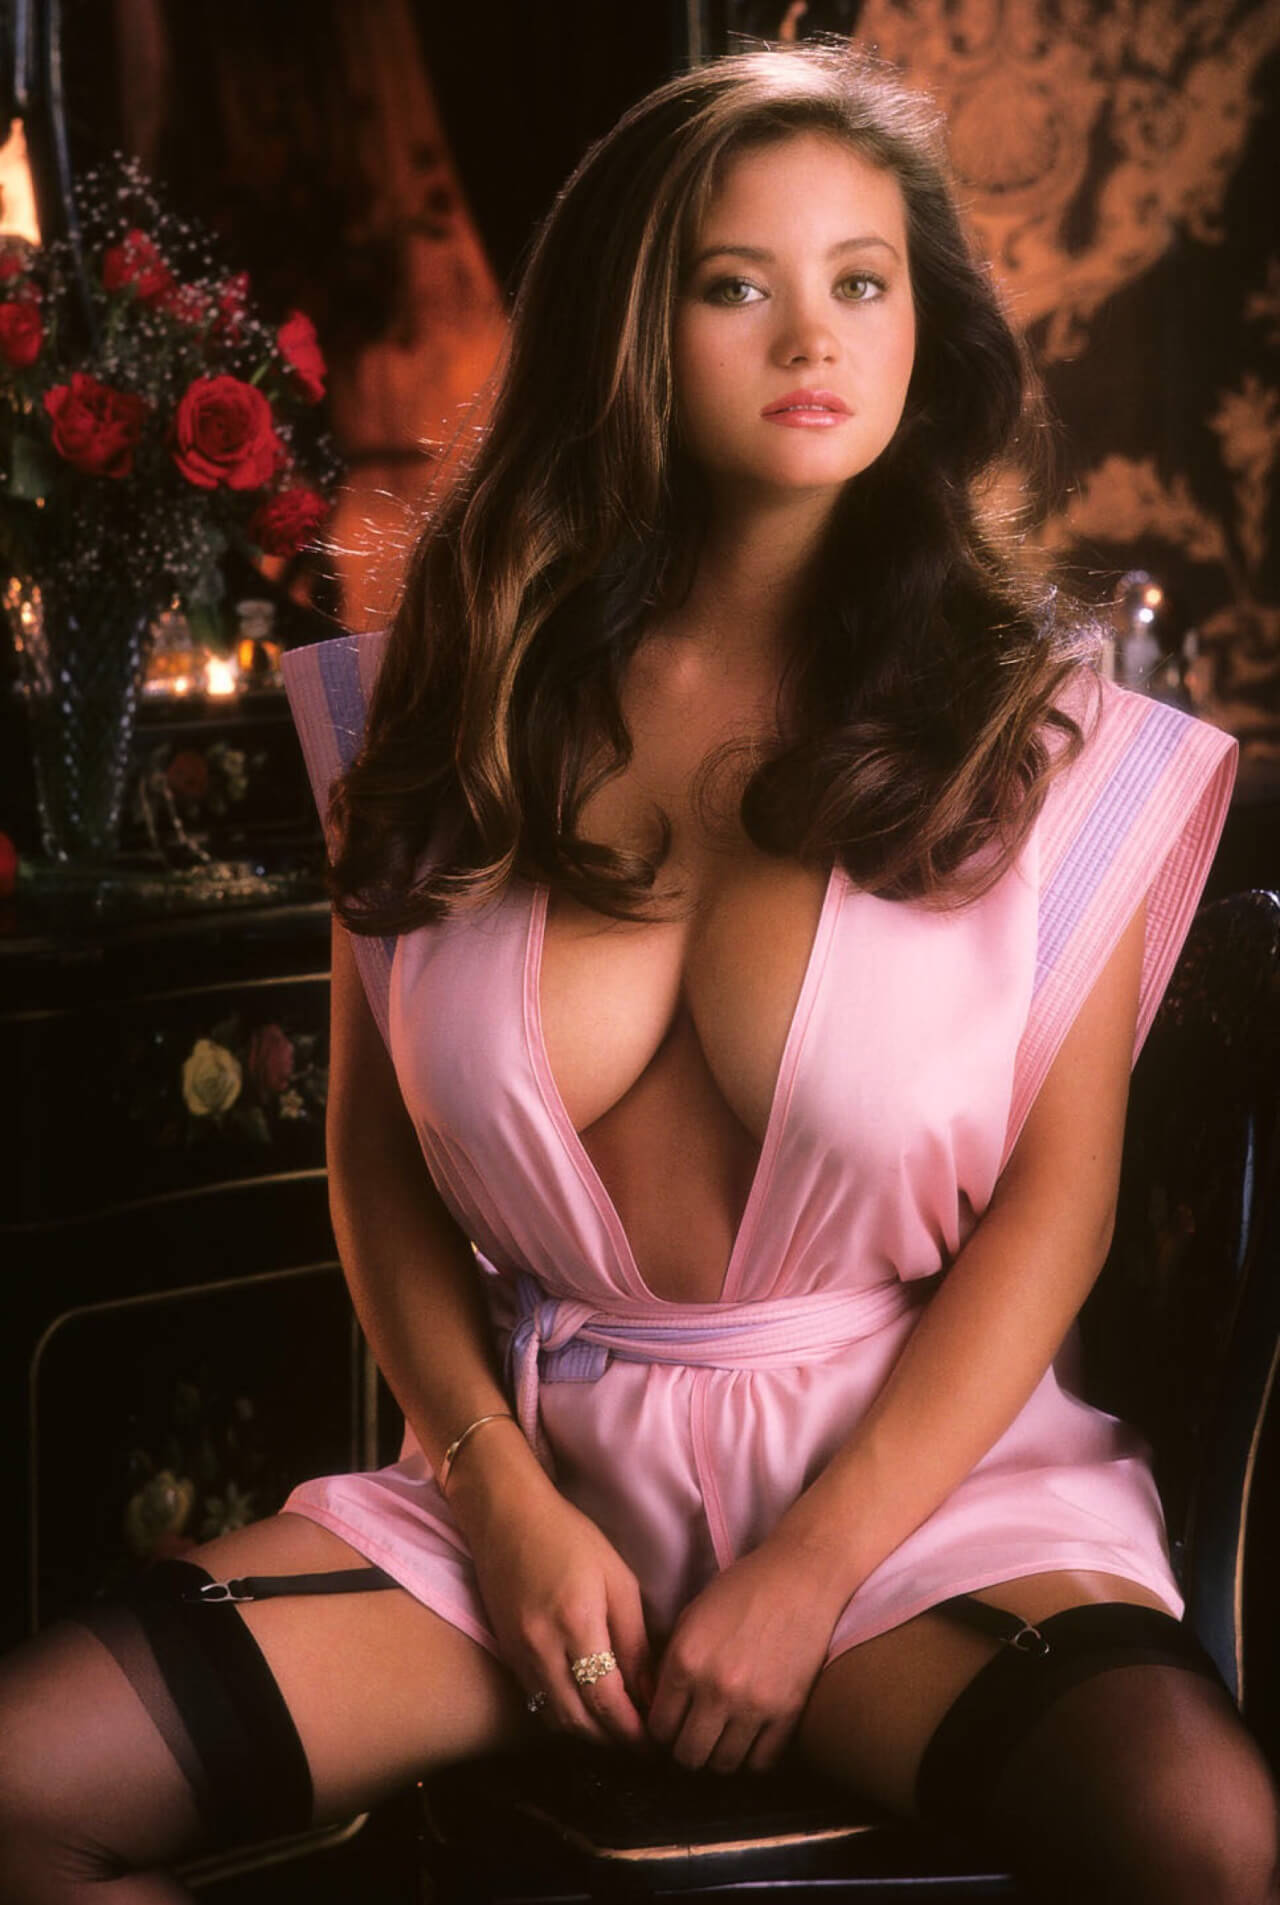 Playboy Playmate - 1980s